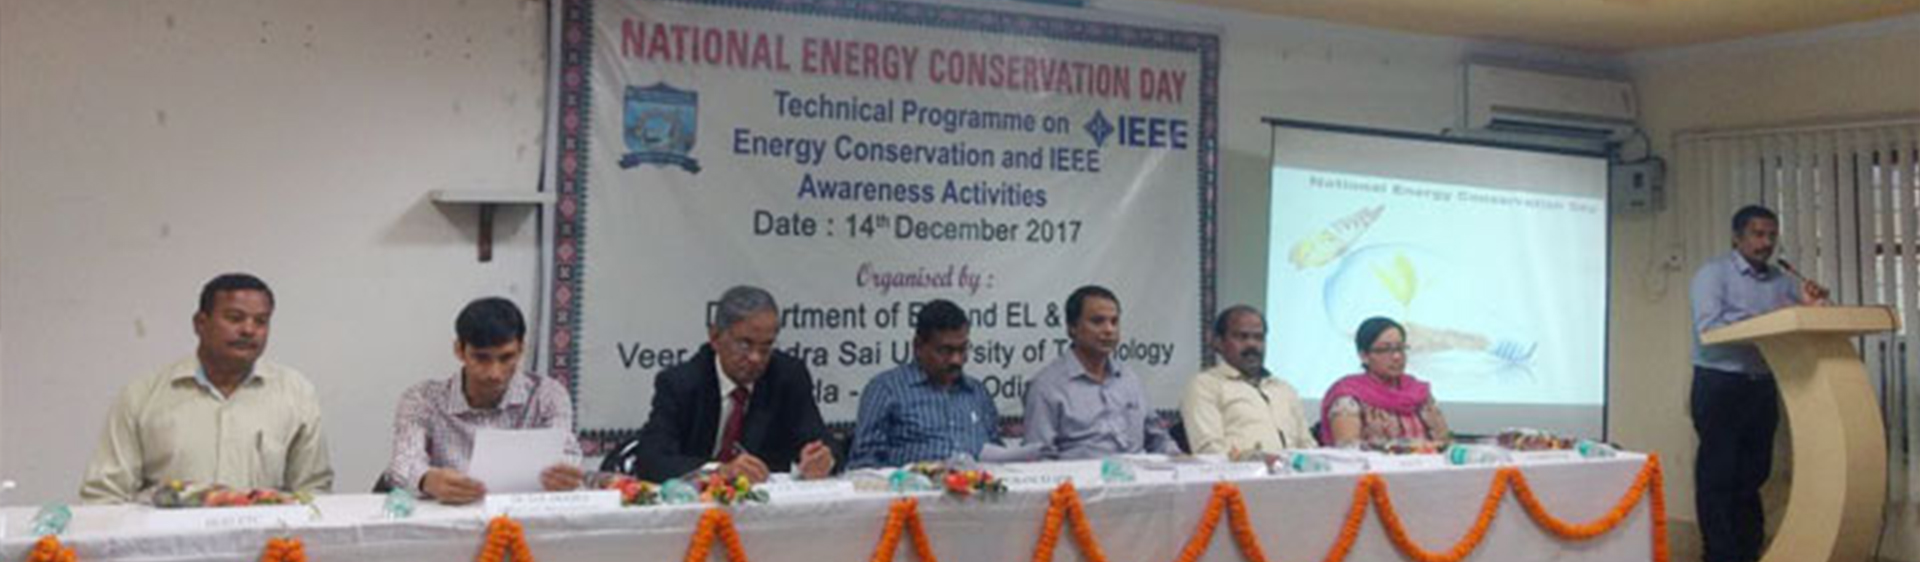 National Energy Conservation Day was Celebrated at VSSUT